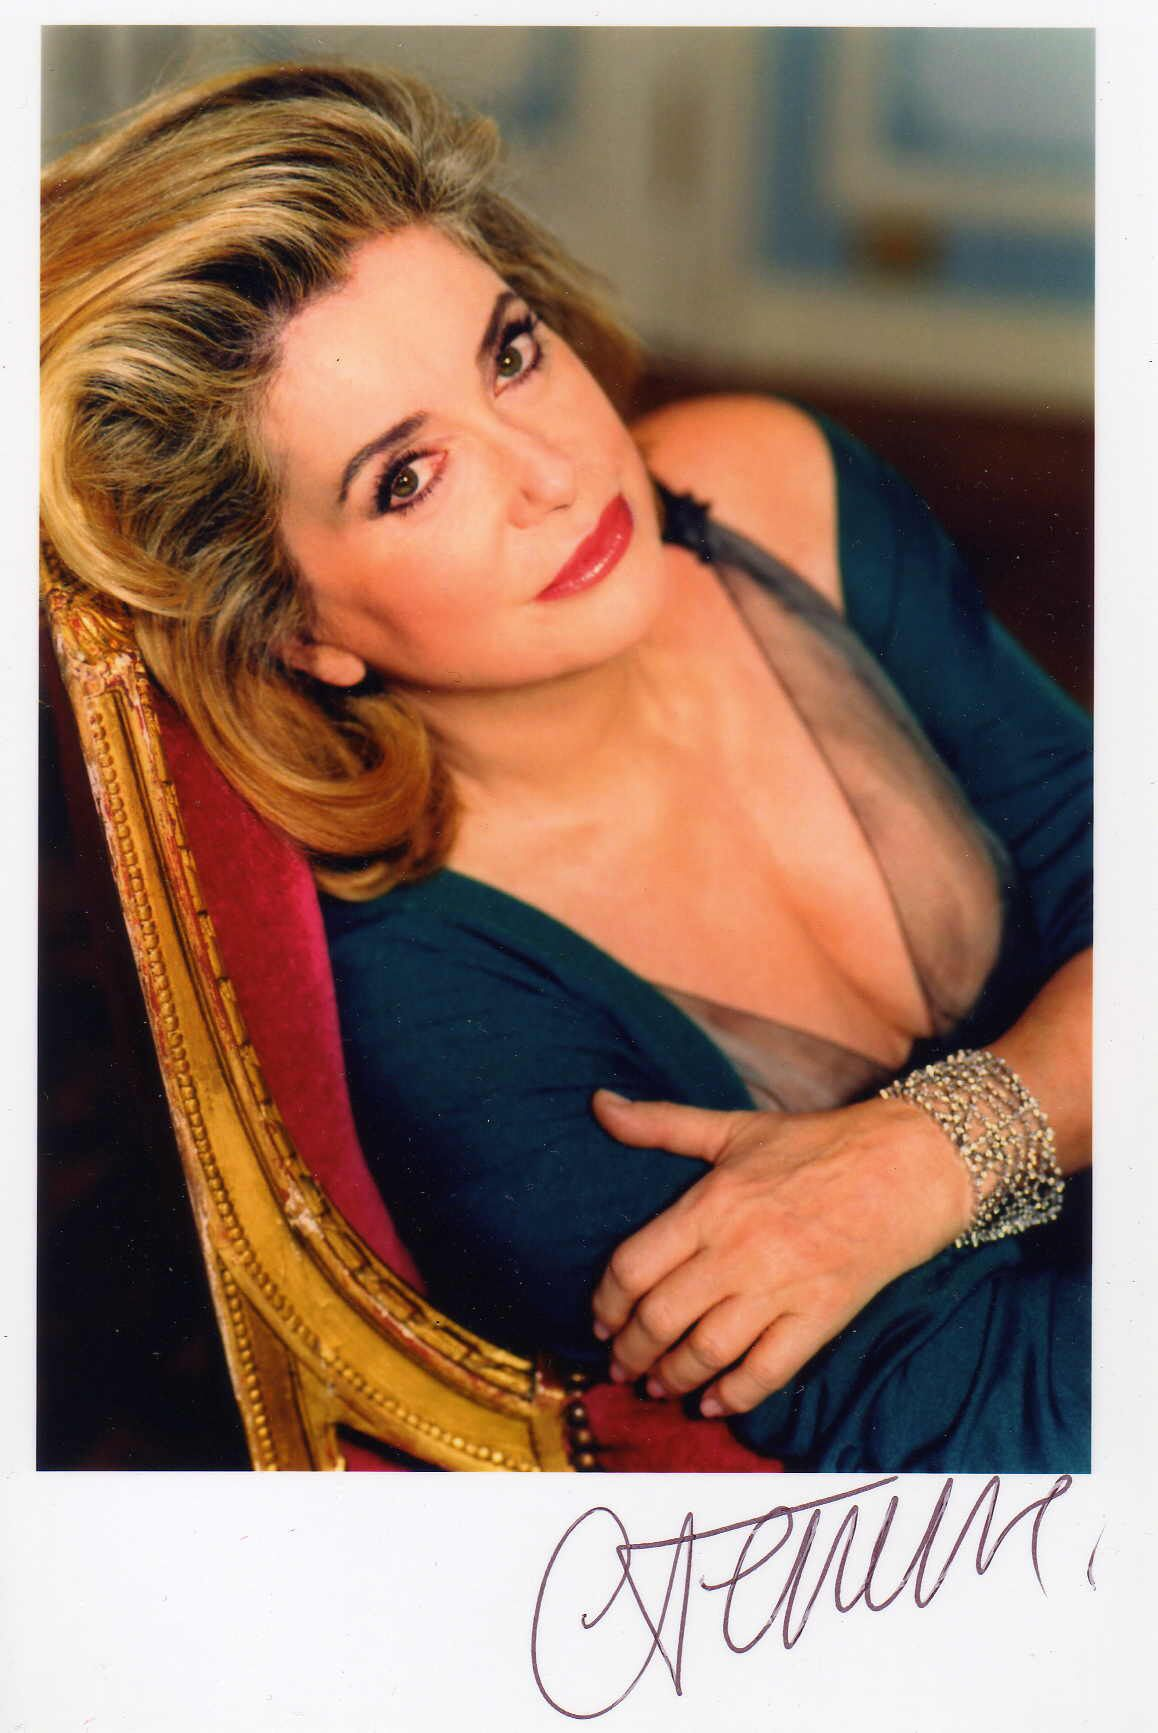 image from http://www.theplace2.ru/archive/catherine_deneuve/img